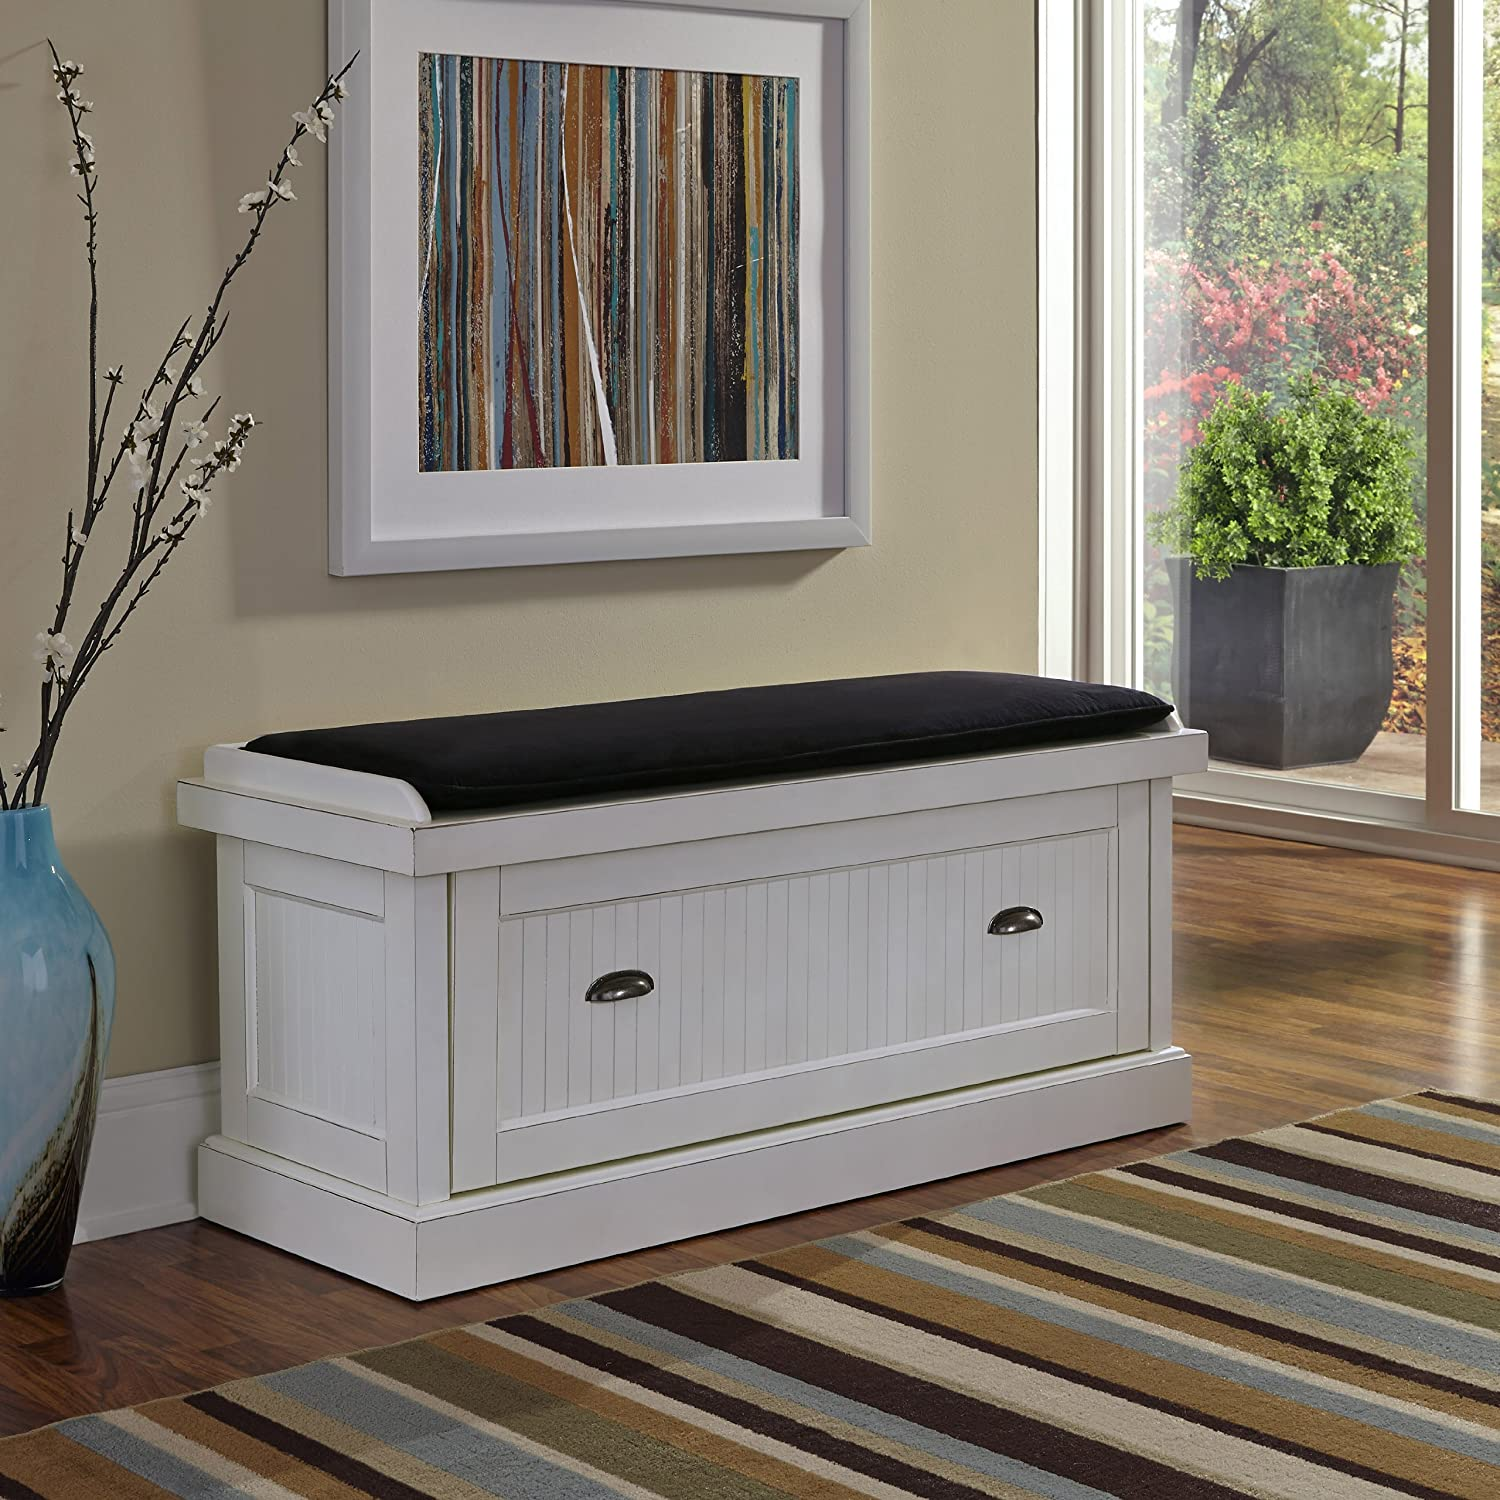 amazoncom home styles nantucket upholstered bench distressed white kitchen u0026 dining